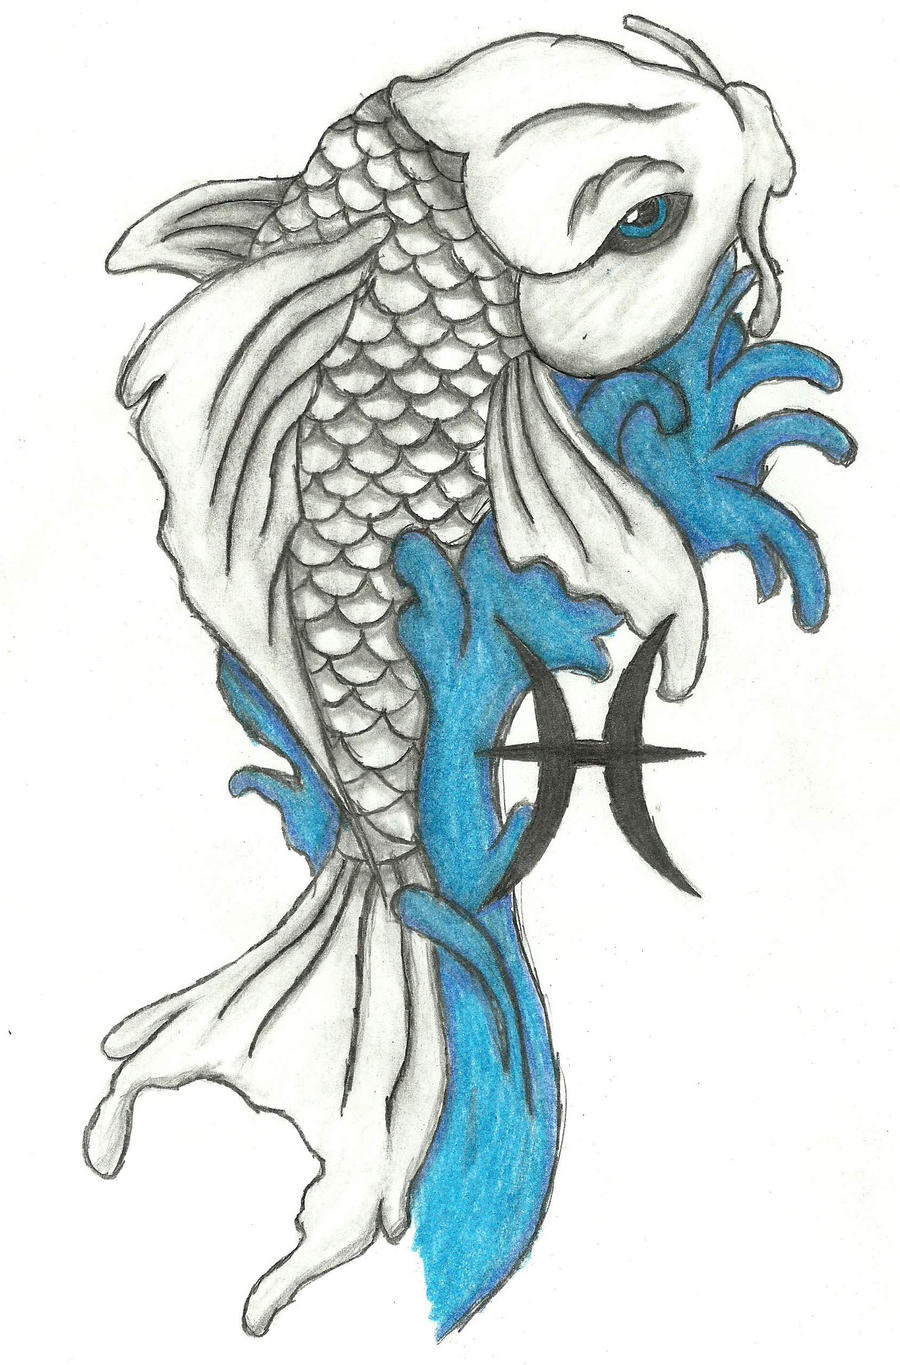 Koi fish by thomasmct on deviantart for Koi fish drawings